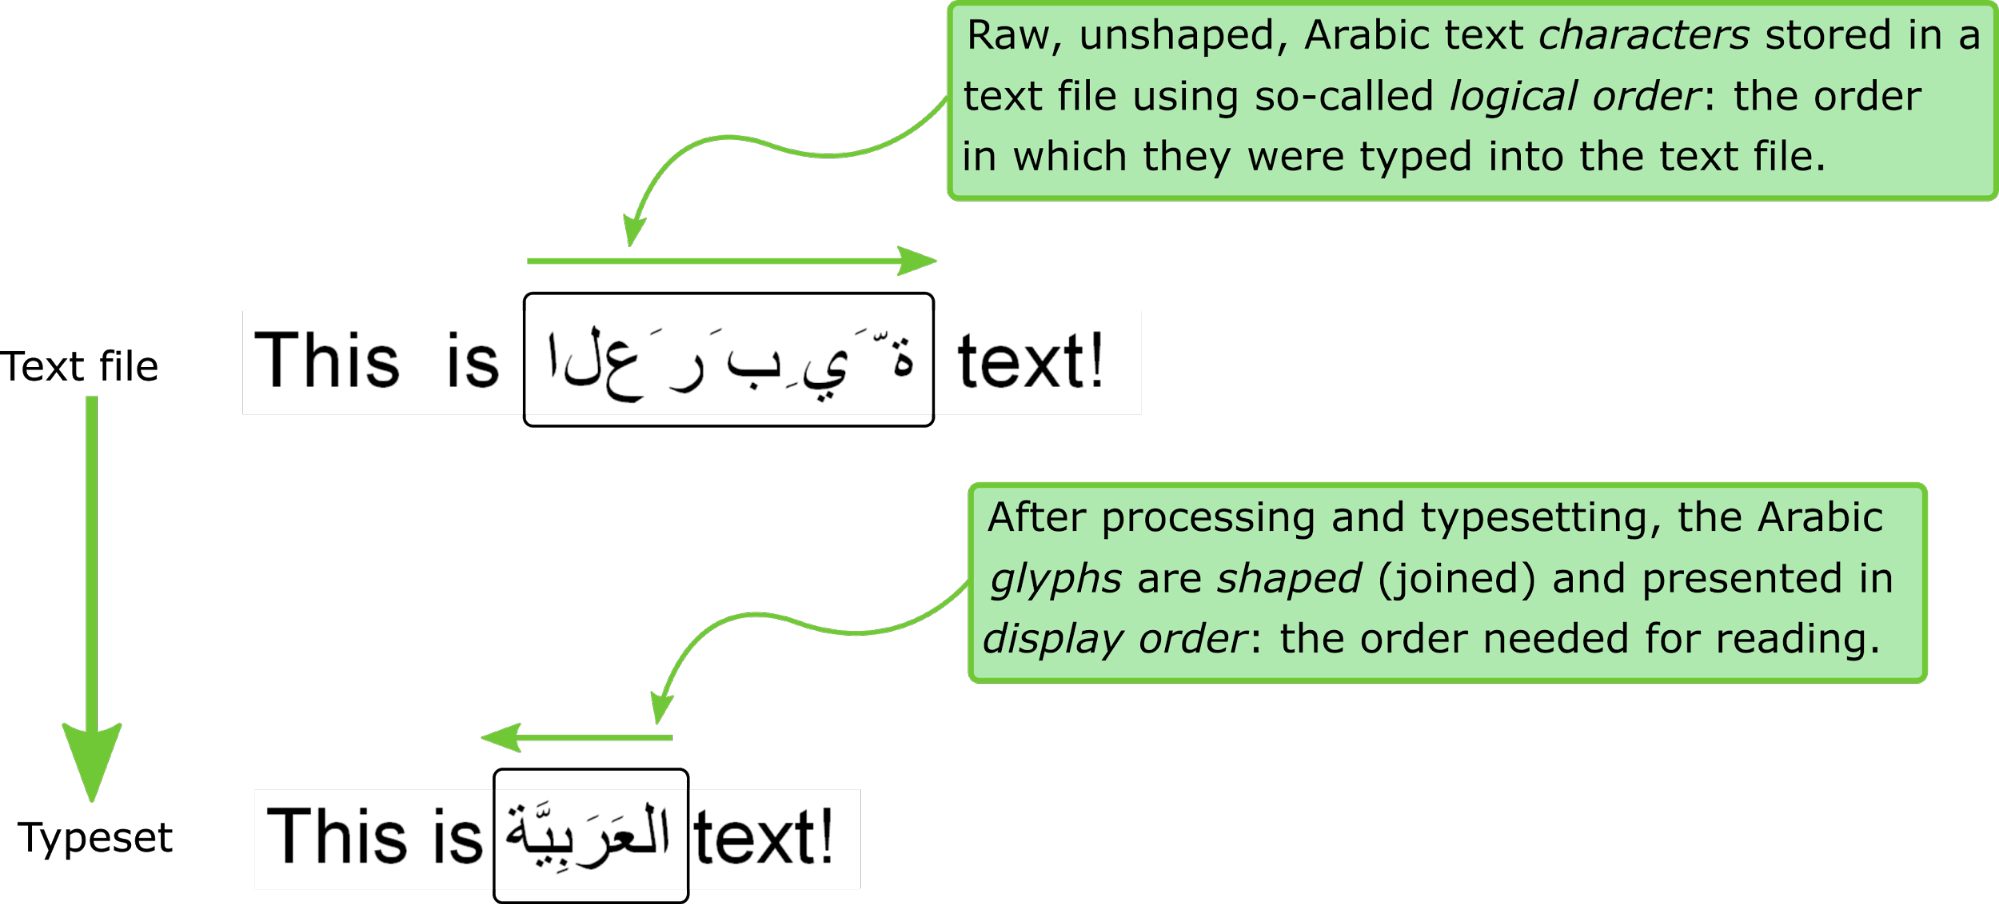 Image showing the transformation undergone by Arabic text when it is typeset